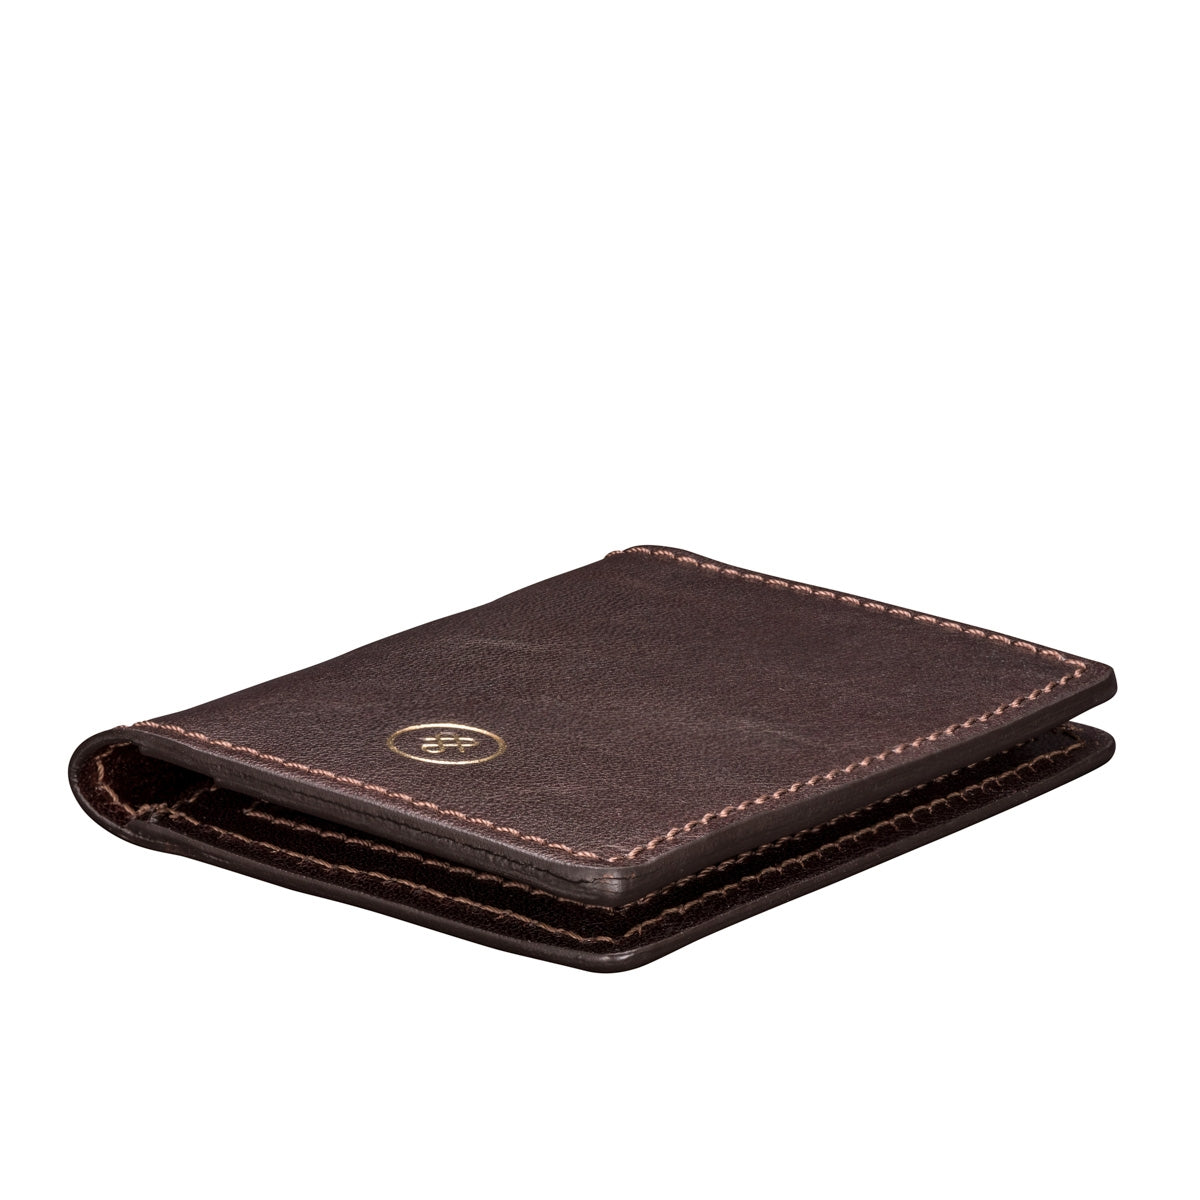 Image 5 of the 'Vallata' Brown Veg-Tanned Leather Oyster Card Holder